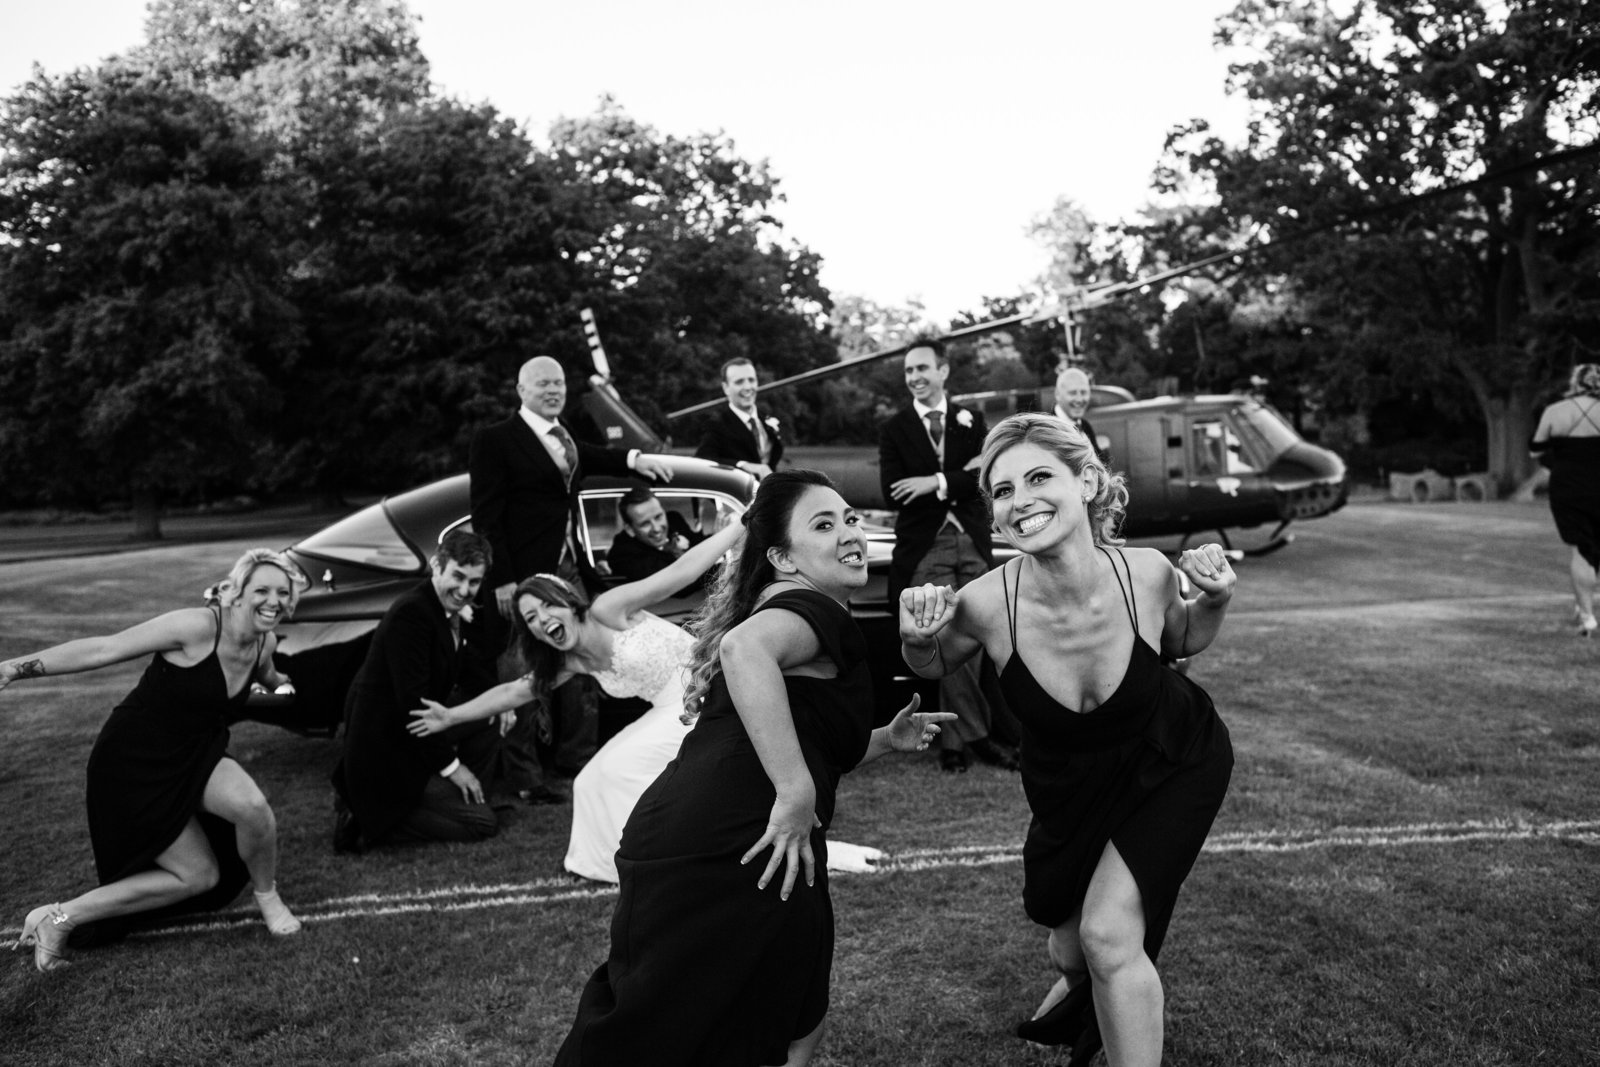 Formal wedding photograph is disrupted by merry Bridesmaids who laugh and pose funnily in front of Groomsmen in Suffolk.